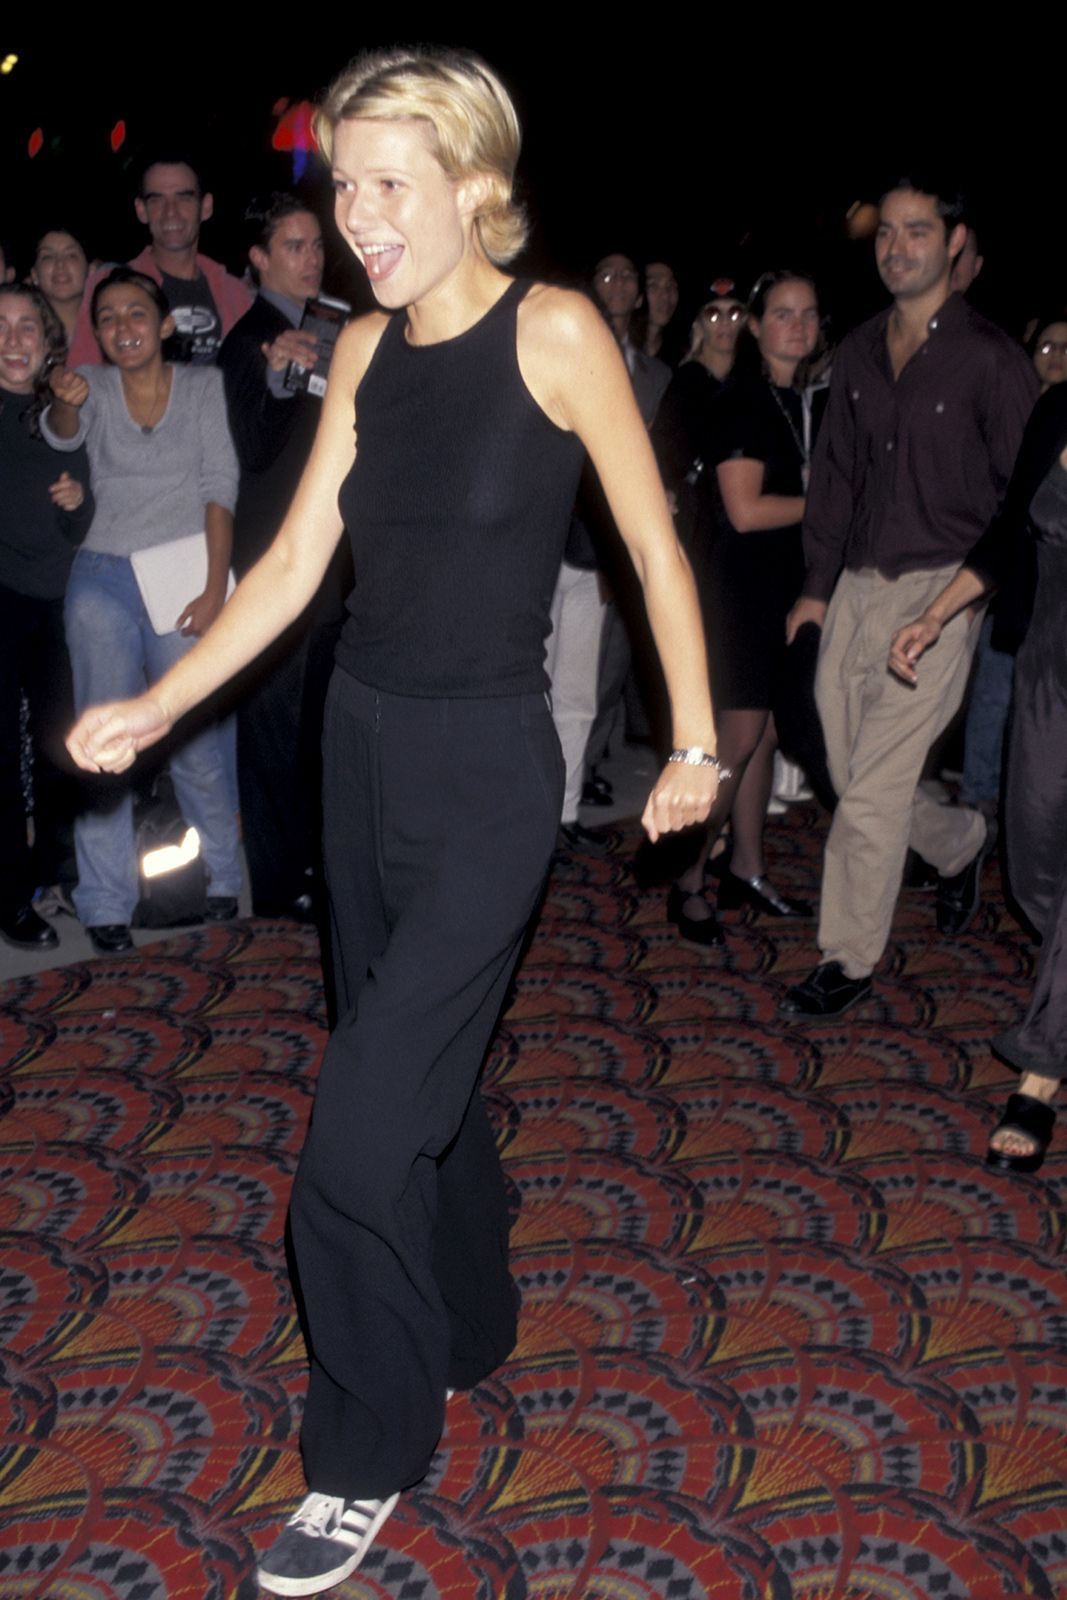 Discussion on this topic: Gwyneth Paltrows 90s Wardrobe Couldnt Be More , gwyneth-paltrows-90s-wardrobe-couldnt-be-more/